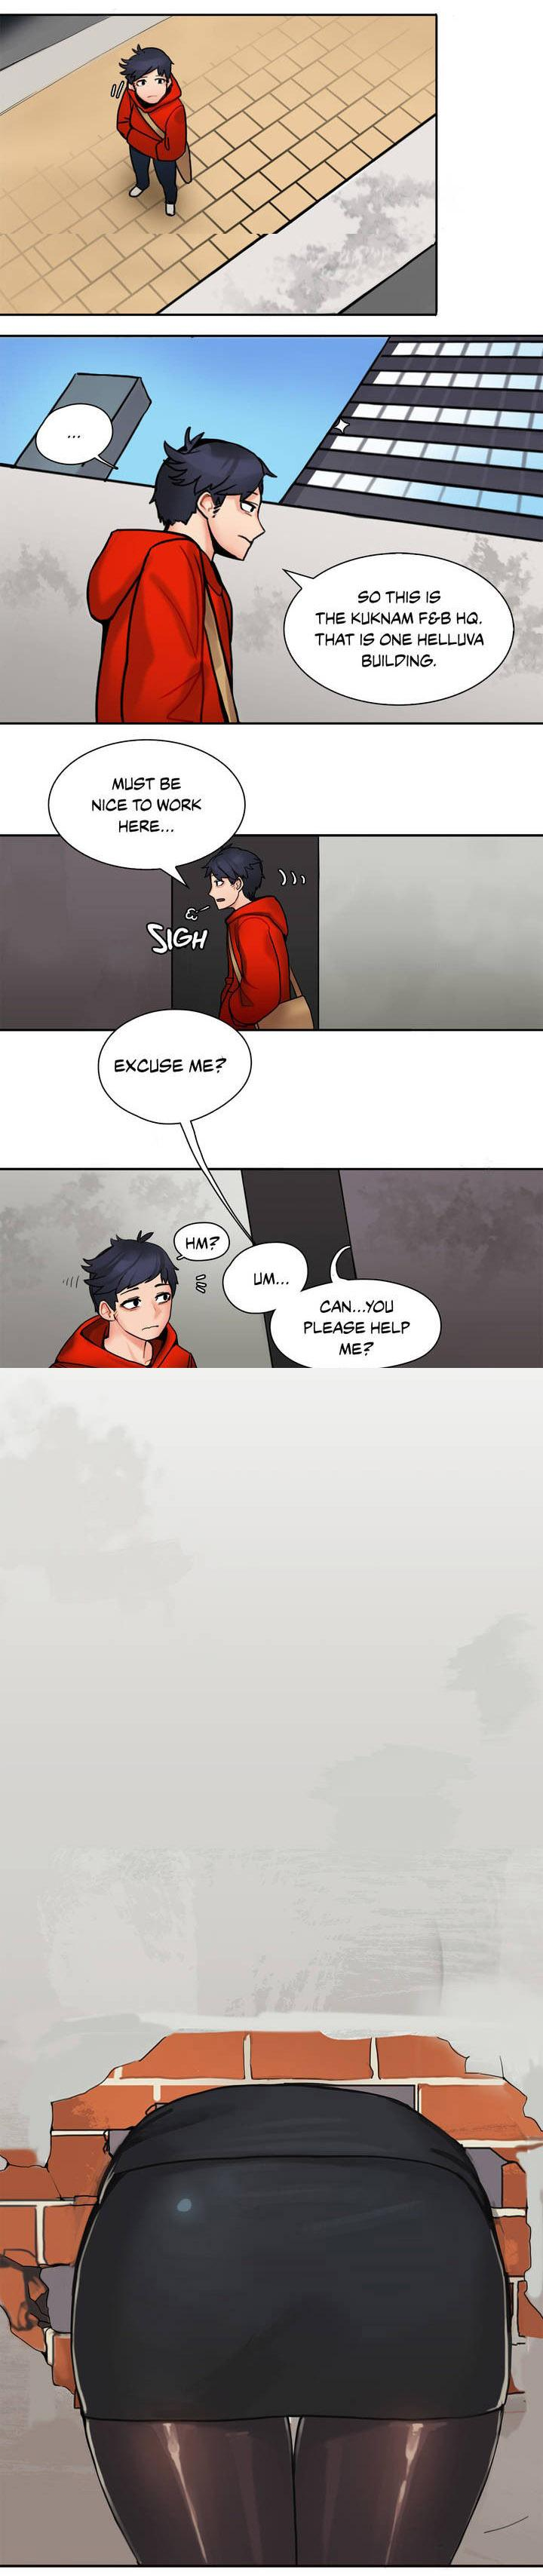 The Girl That Got Stuck in the Wall Ch.1/10 5